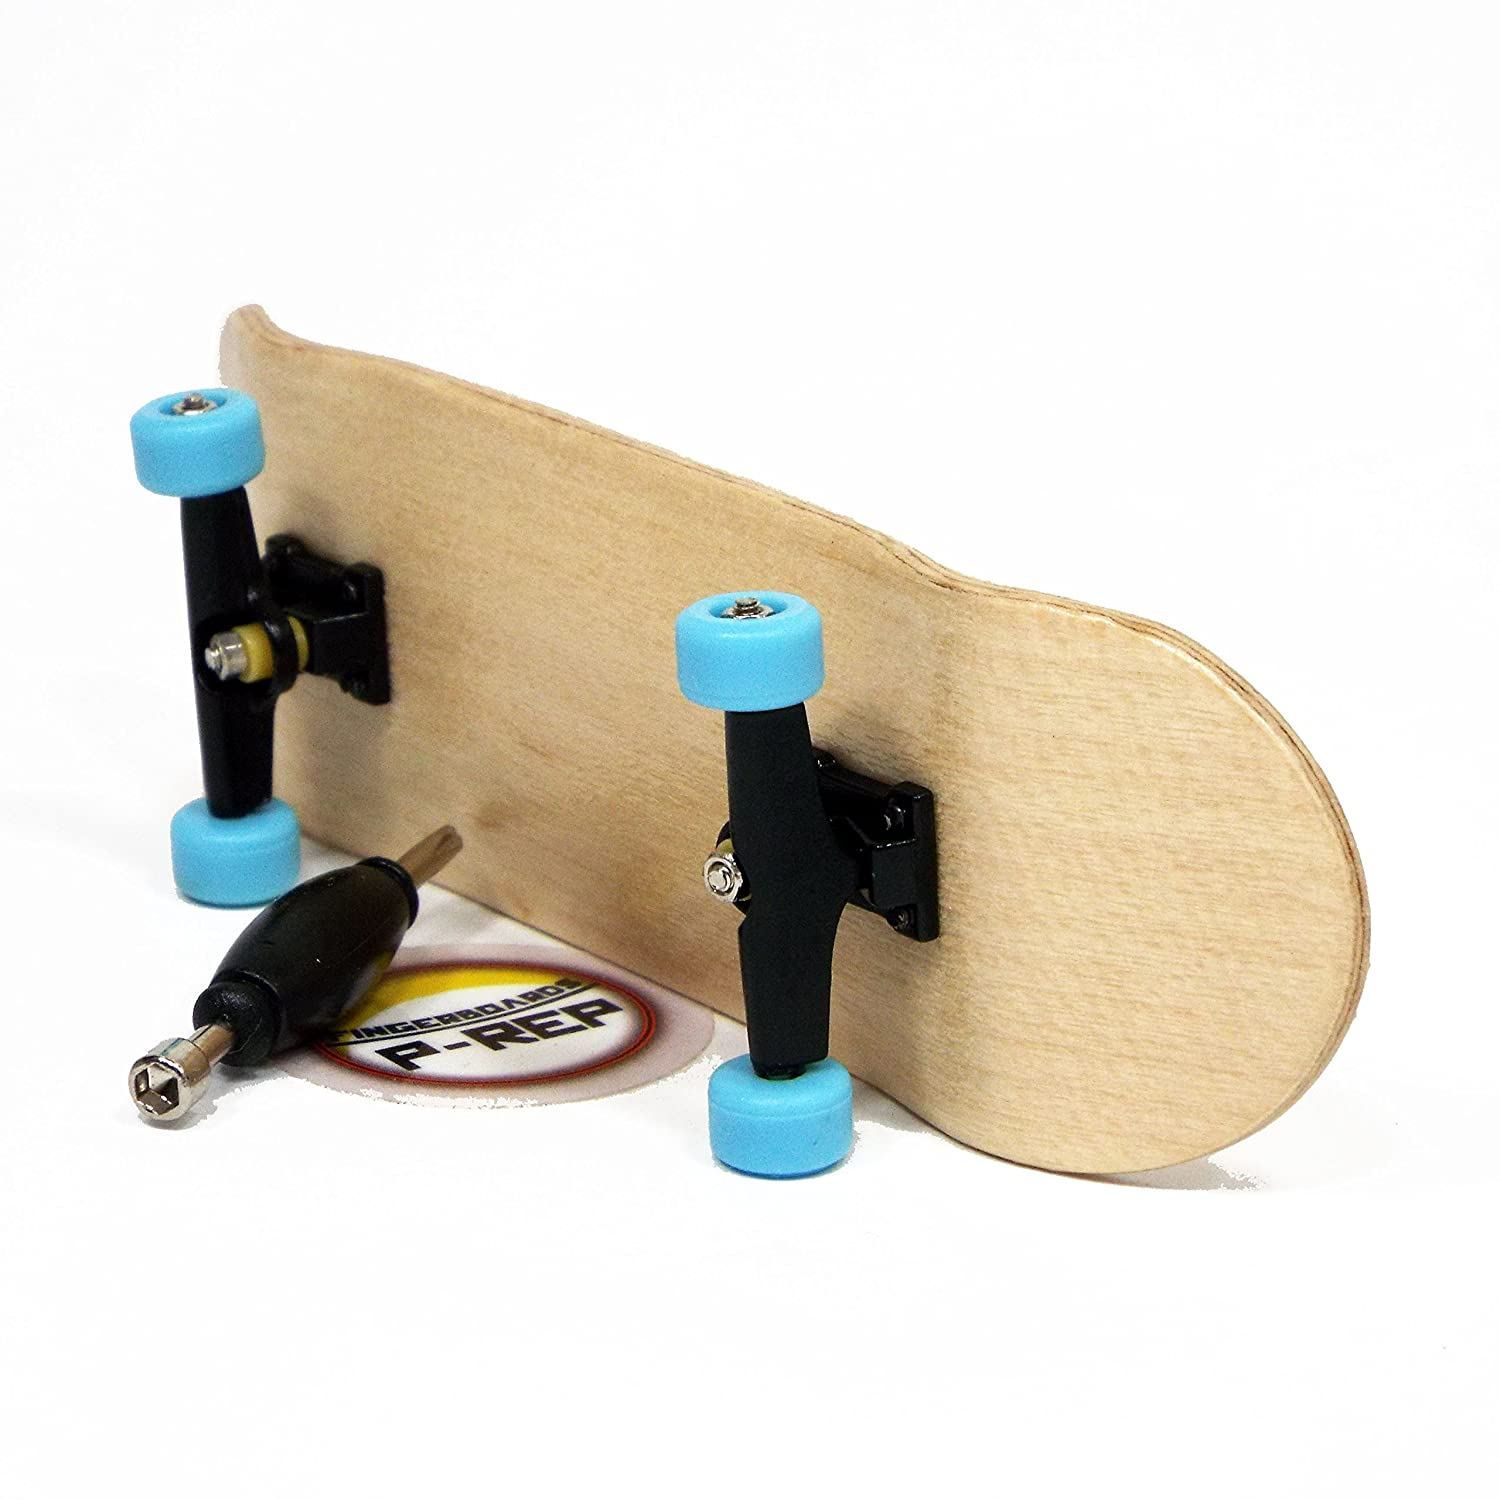 Peoples Republic Maple Complete Wooden Fingerboard with Basic Bearing Wheels Starter Edition